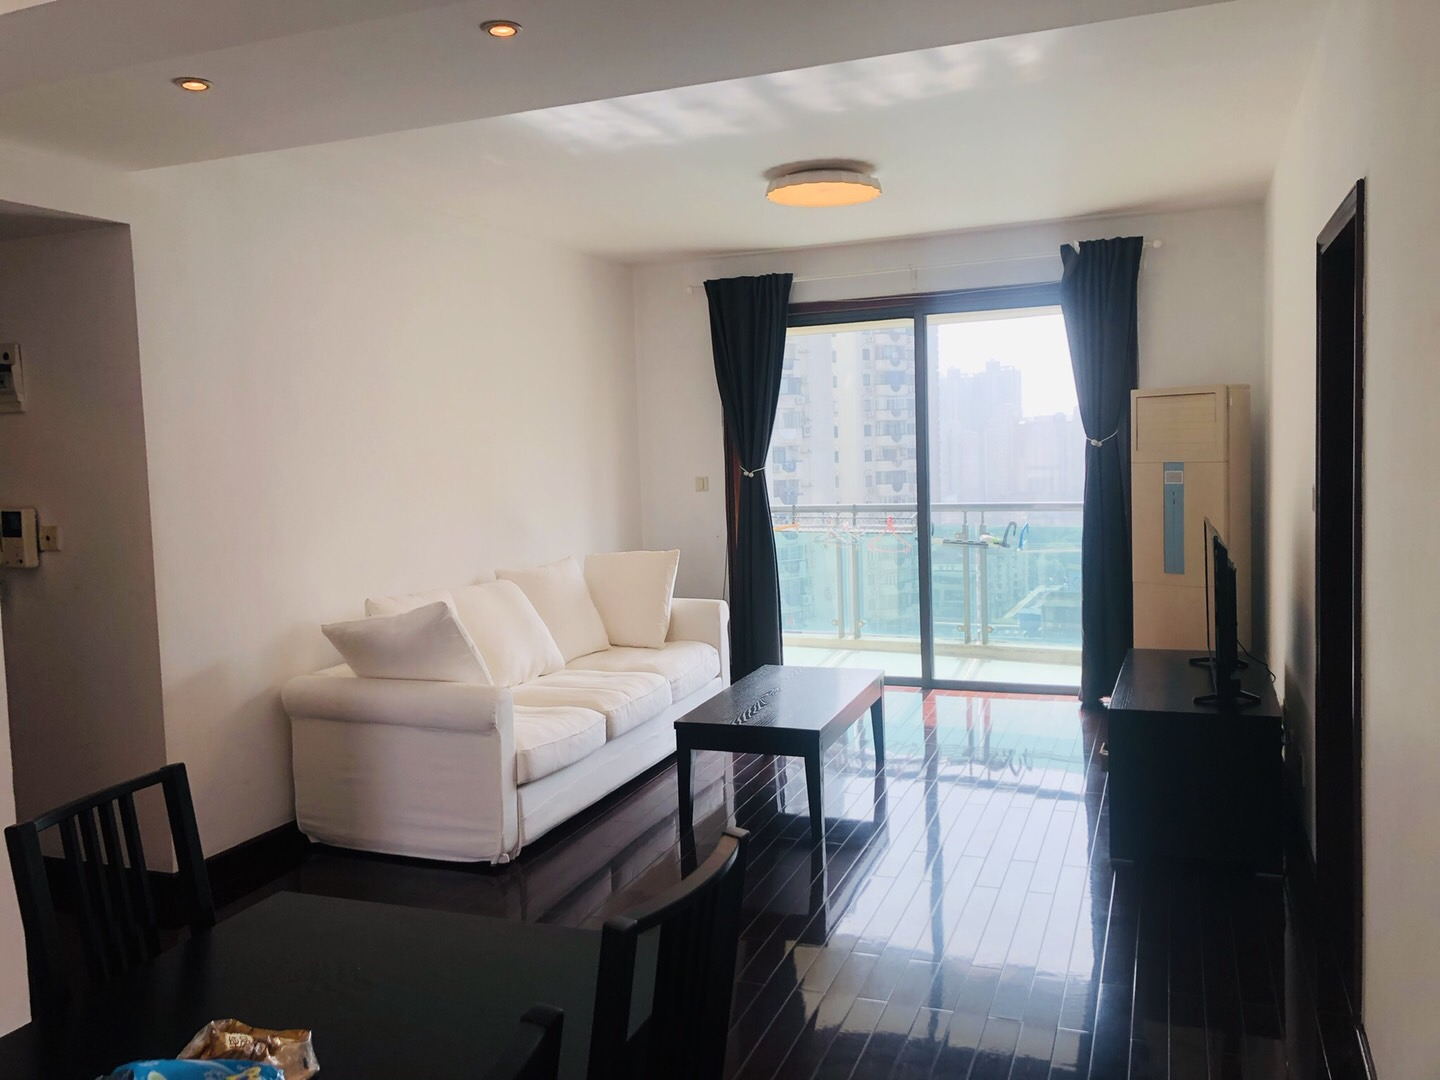 3br in Sinan Garden /One stone throw away to Dapuqiao Line 9/Tianzifang